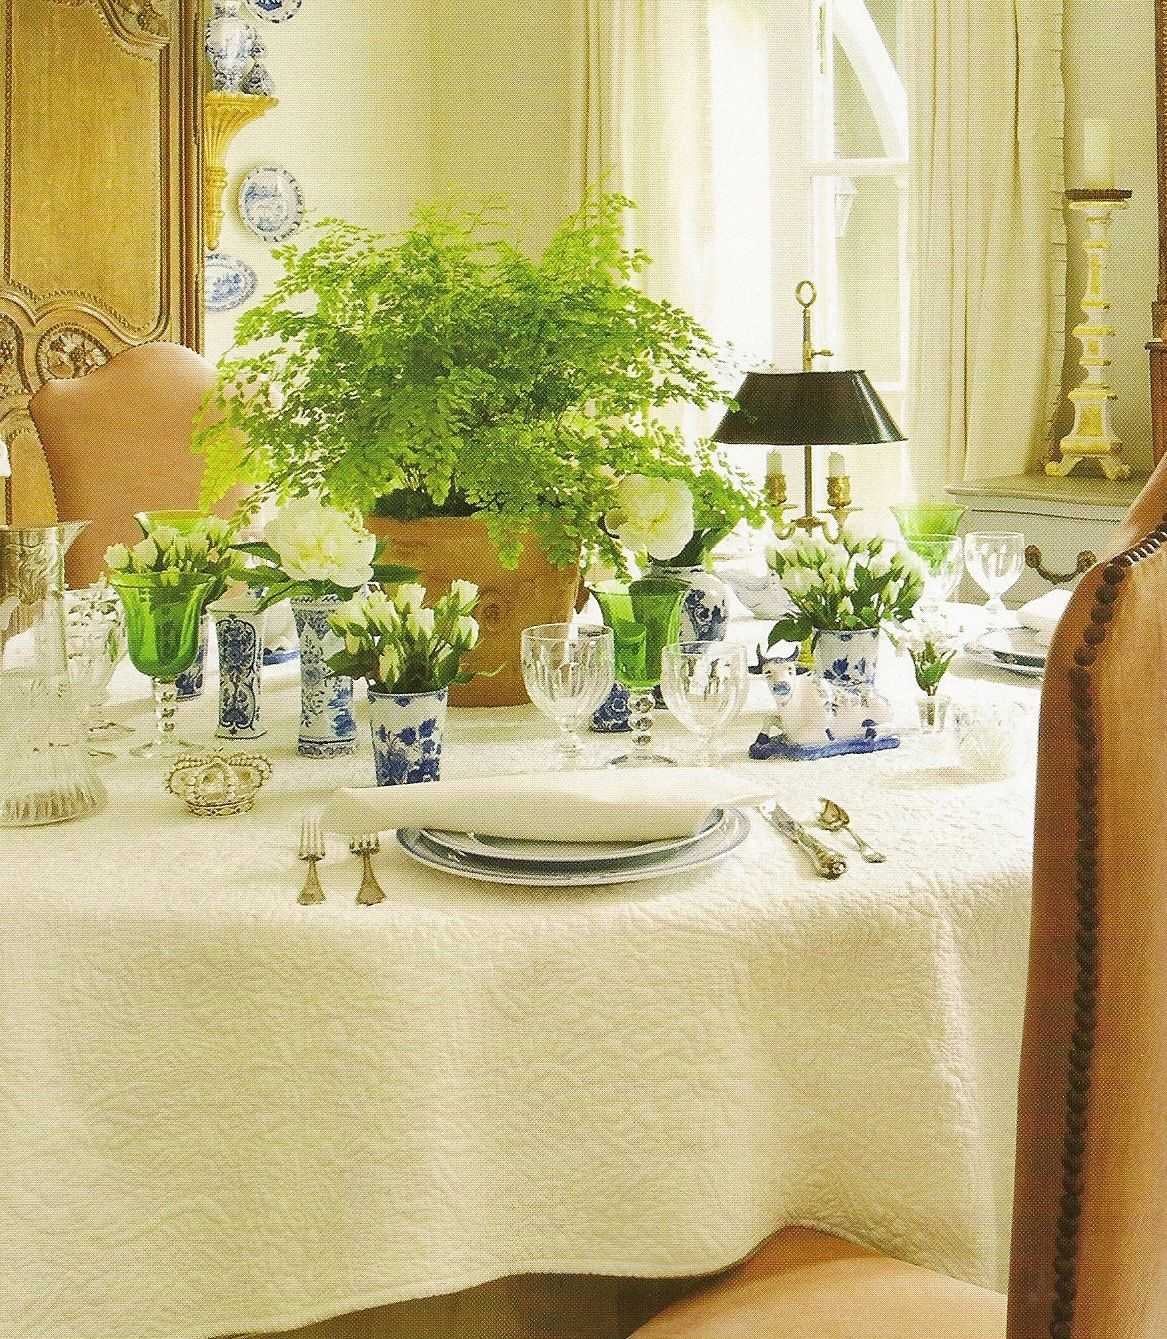 Use of a maidenhair fern as the centerpiece adds color and delicacy liking the tiny